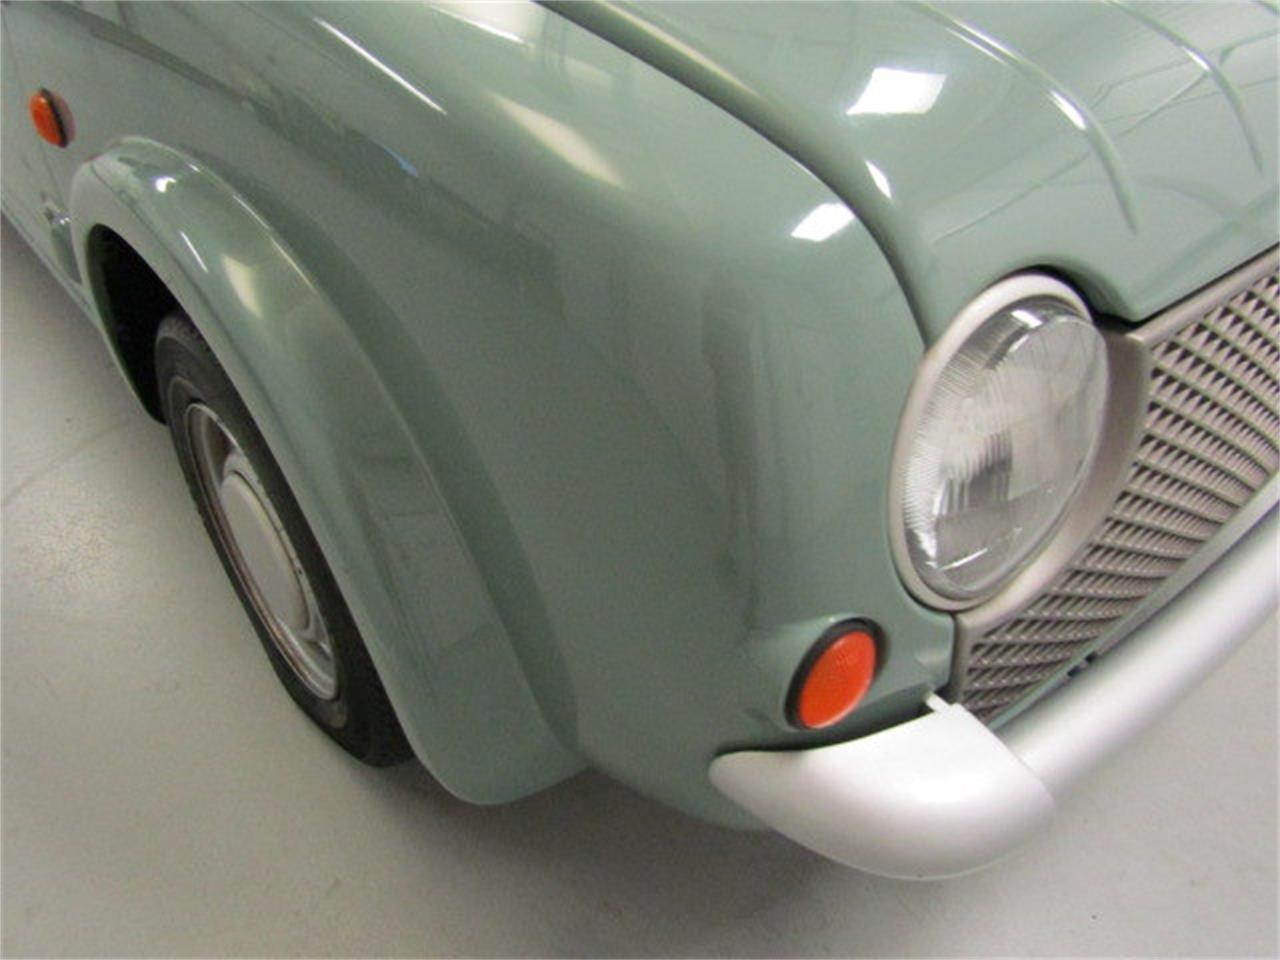 Large Picture of '90 Nissan Pao - $9,967.00 Offered by Duncan Imports & Classic Cars - LI63